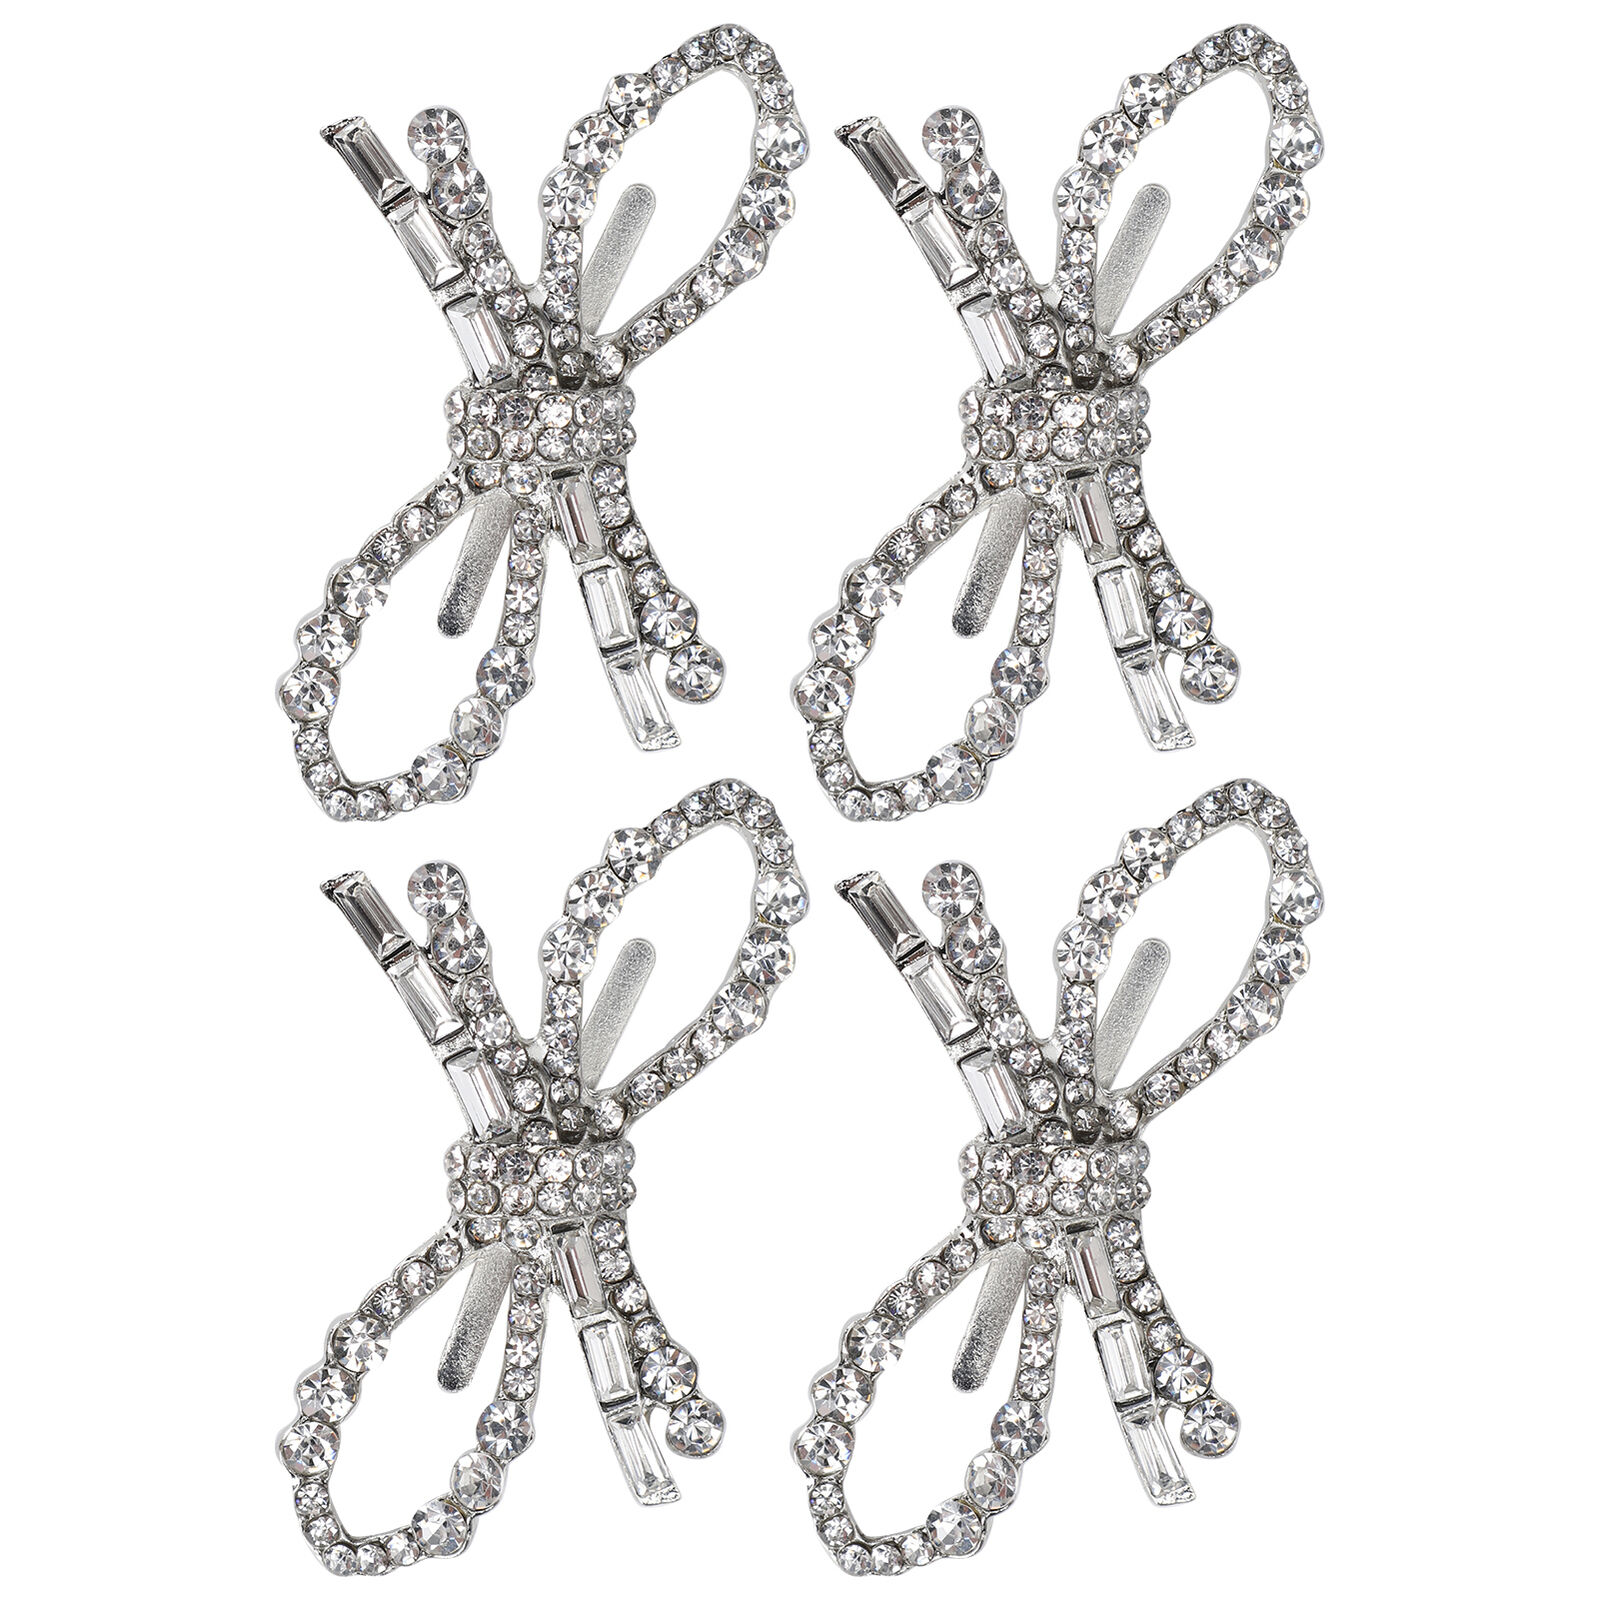 4Pcs Pearl Decorations Fashion Shoe Clips Alloy Jewelry Ornaments Craft